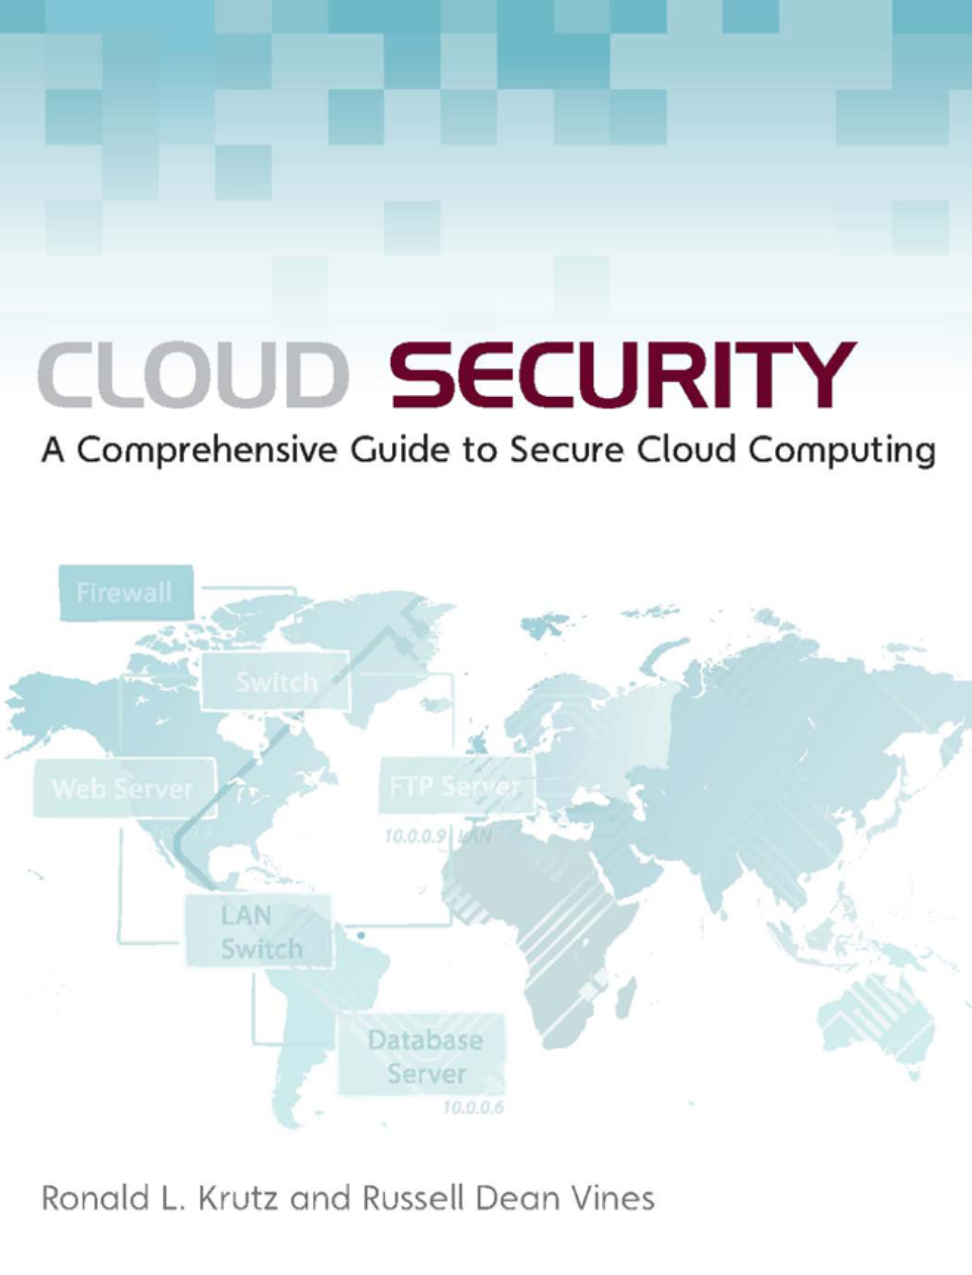 Cloud Security at Social-Media.press